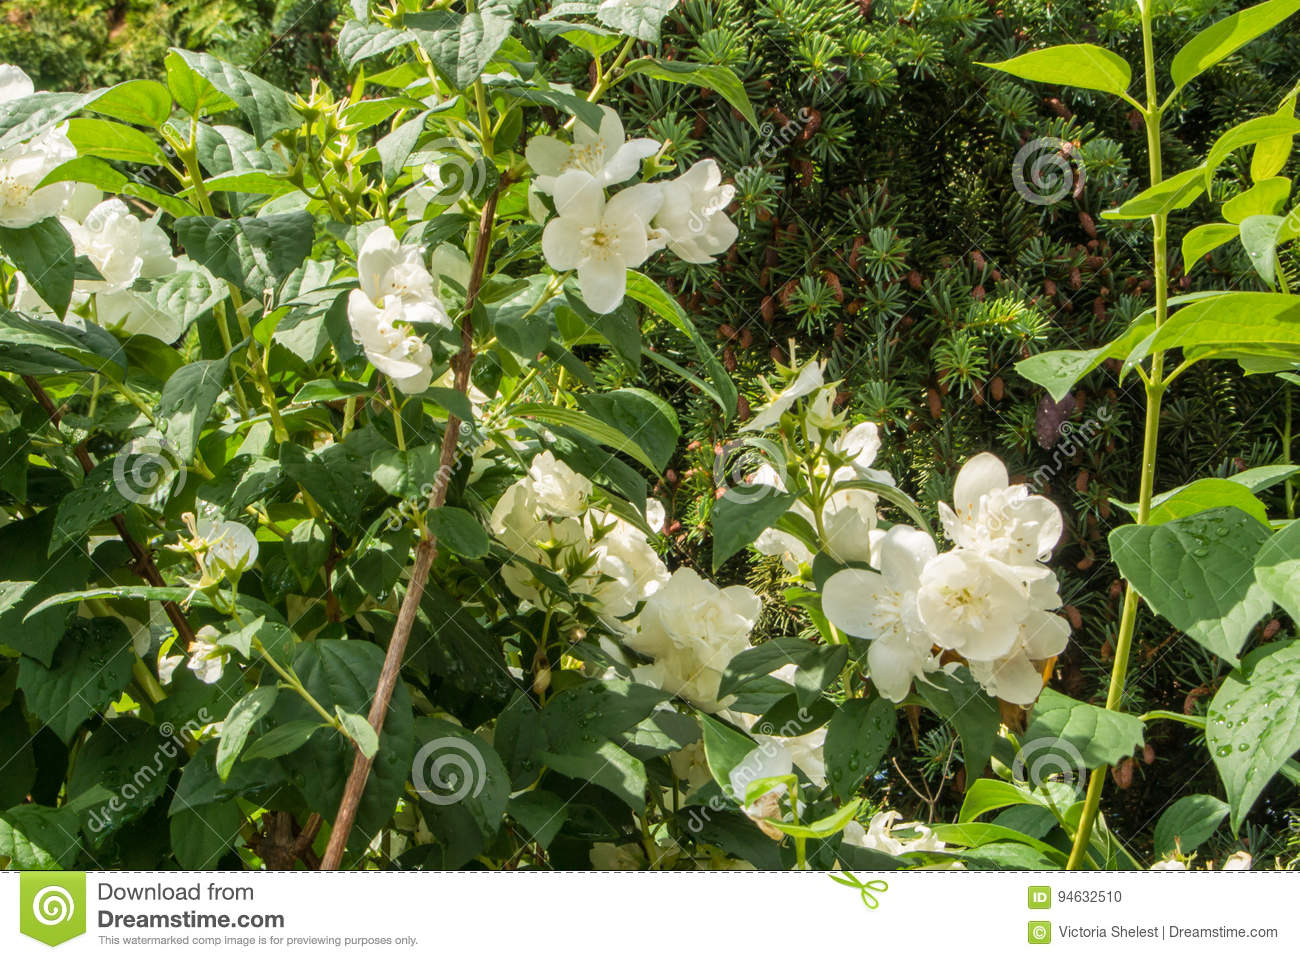 Jasmine Bush With Plenty Of White Fresh Flowers In The Garden After